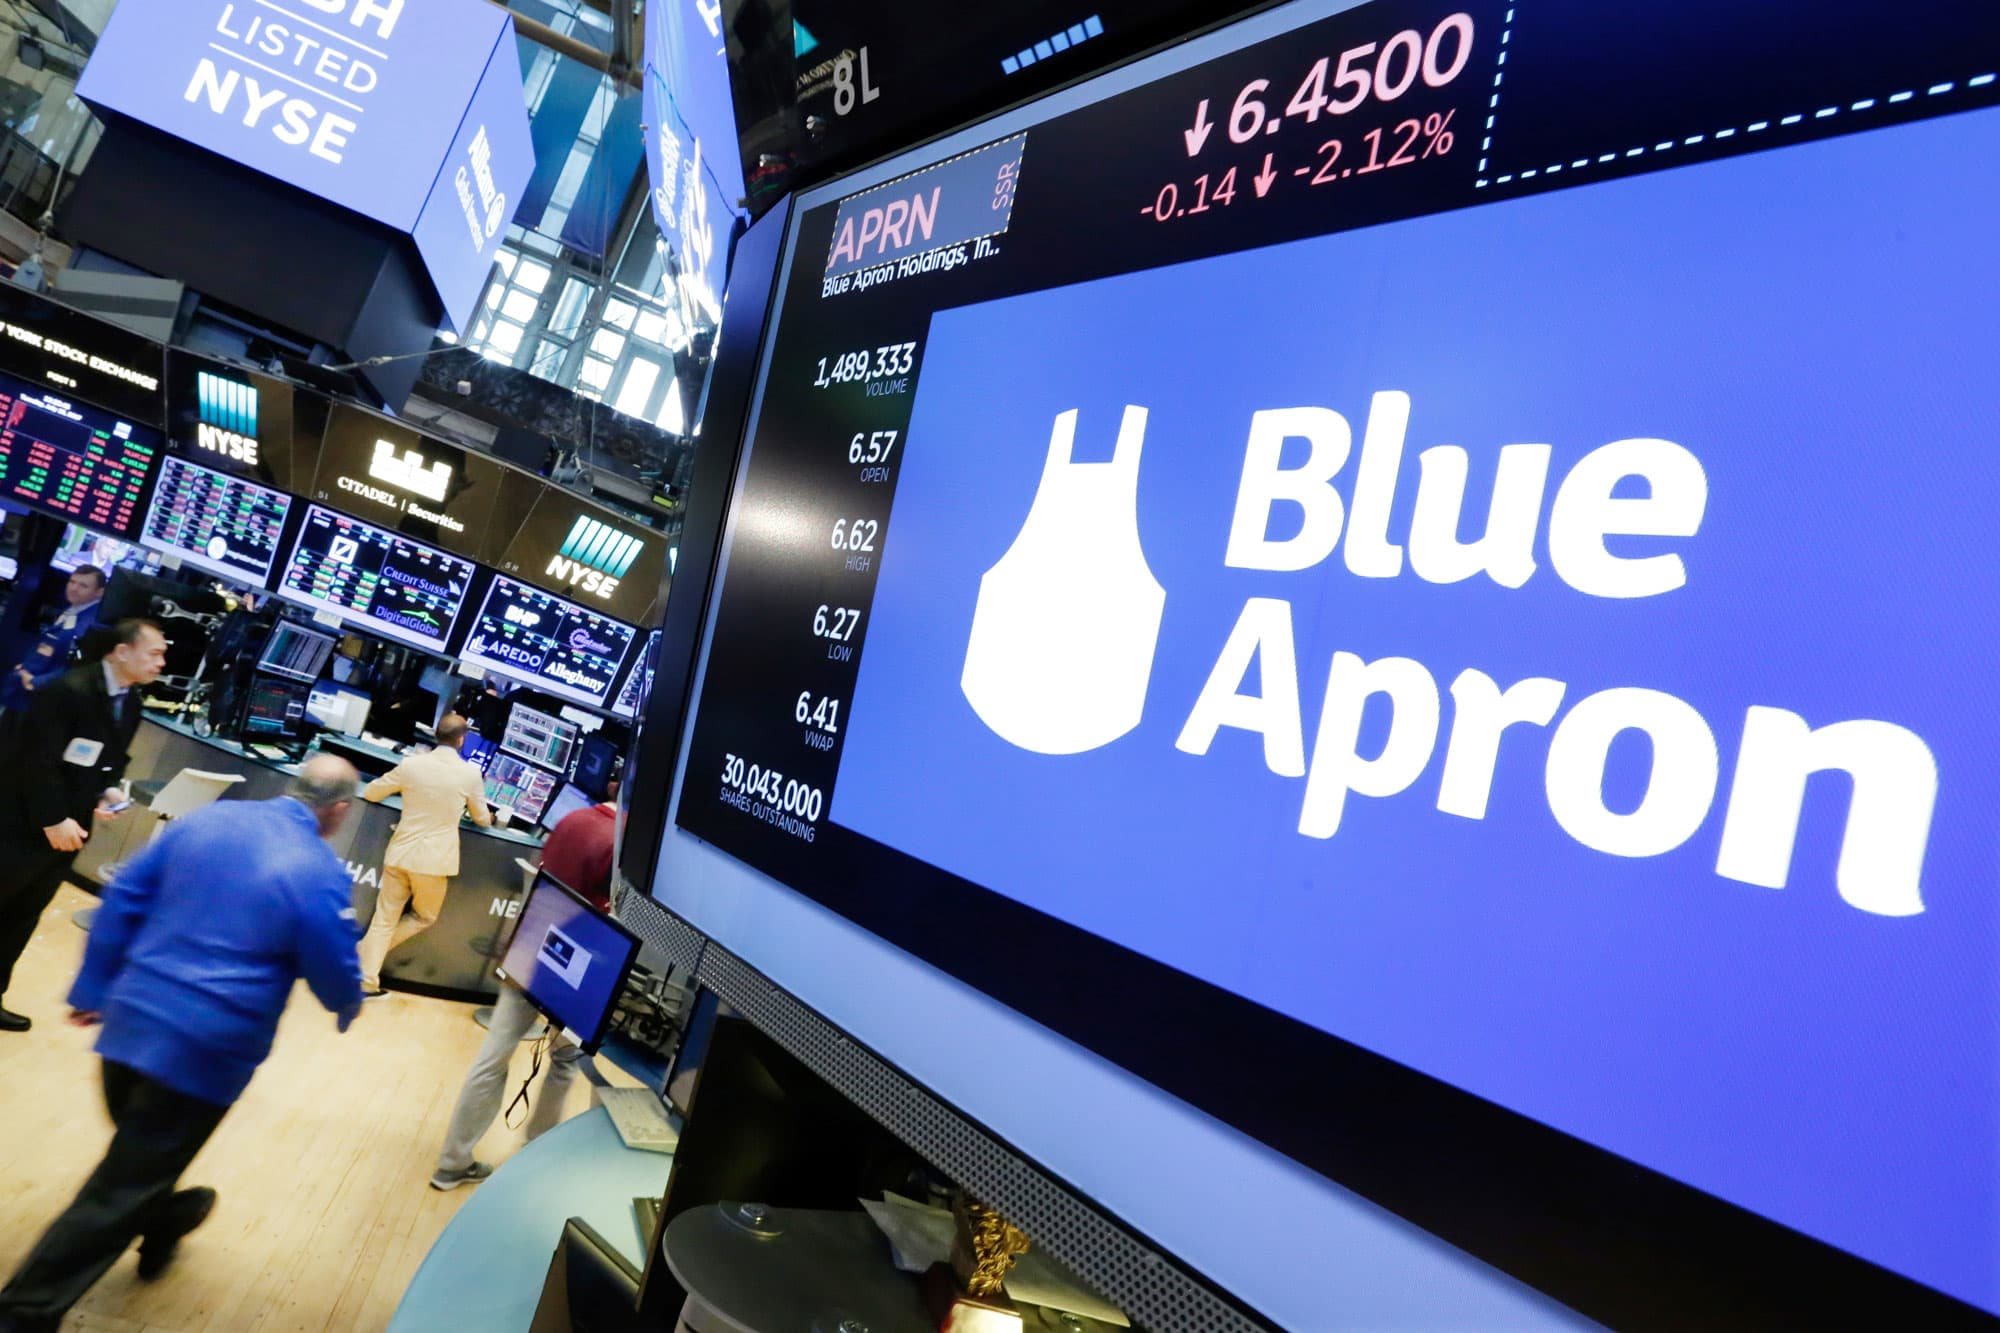 Blue Apron stock surges after Barclays sees 'stabilization point'